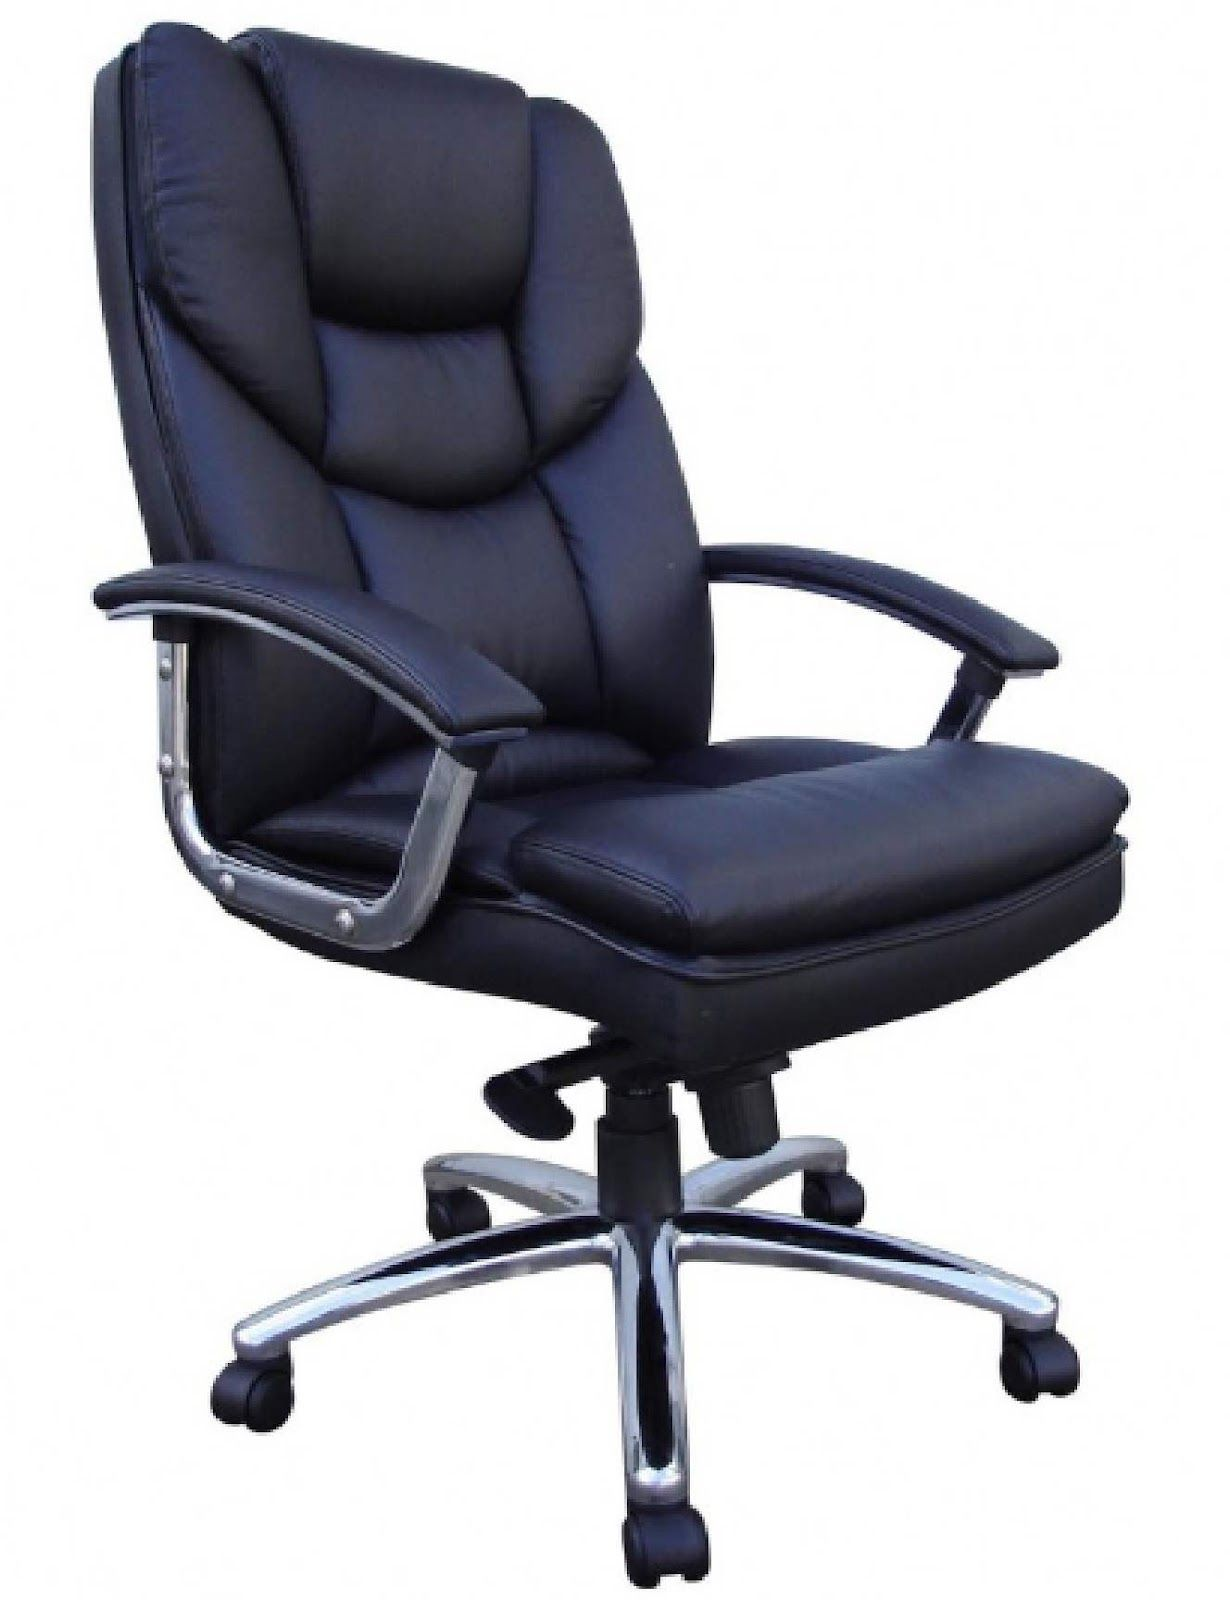 136 Reference Of Comfy Desk Chair Uk In 2020 Office Chair Luxury Office Chairs Desk Chair Comfy